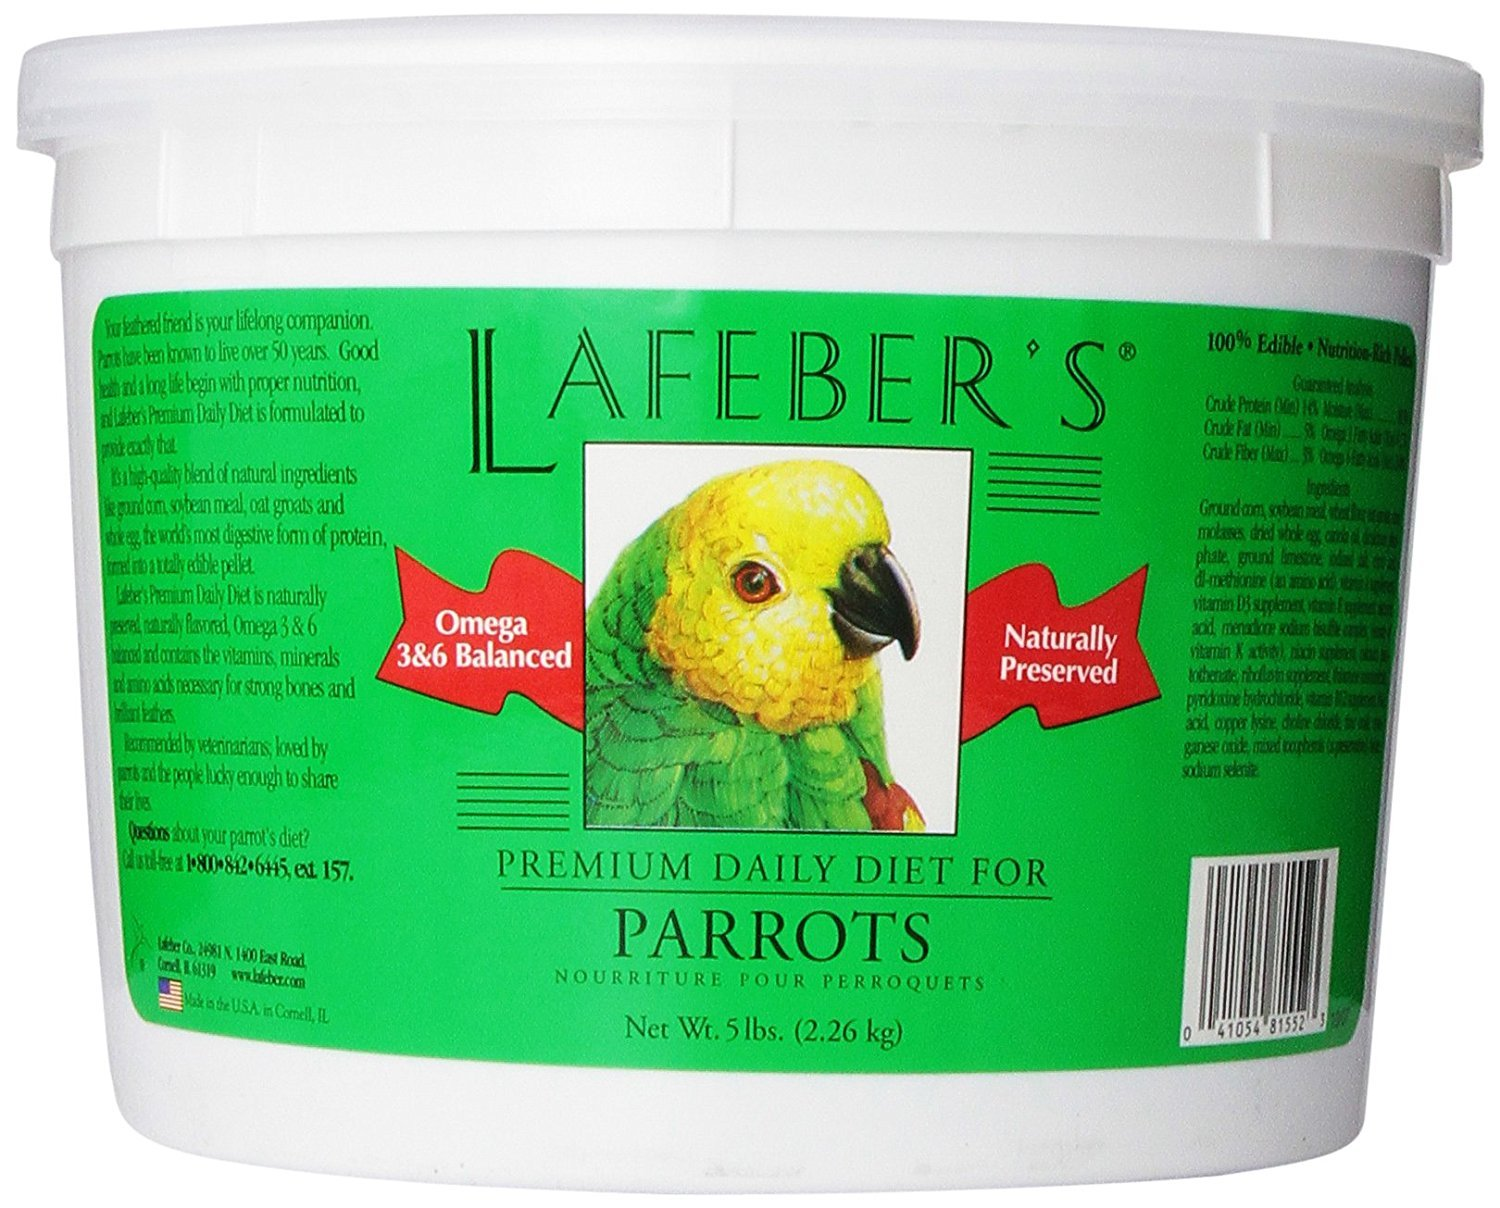 LAFEBER'S Premium Daily Diet Pellets Pet Bird Food, Made with Non-GMO and Human-Grade Ingredients, for Parrots, 5 lbs by LAFEBER'S